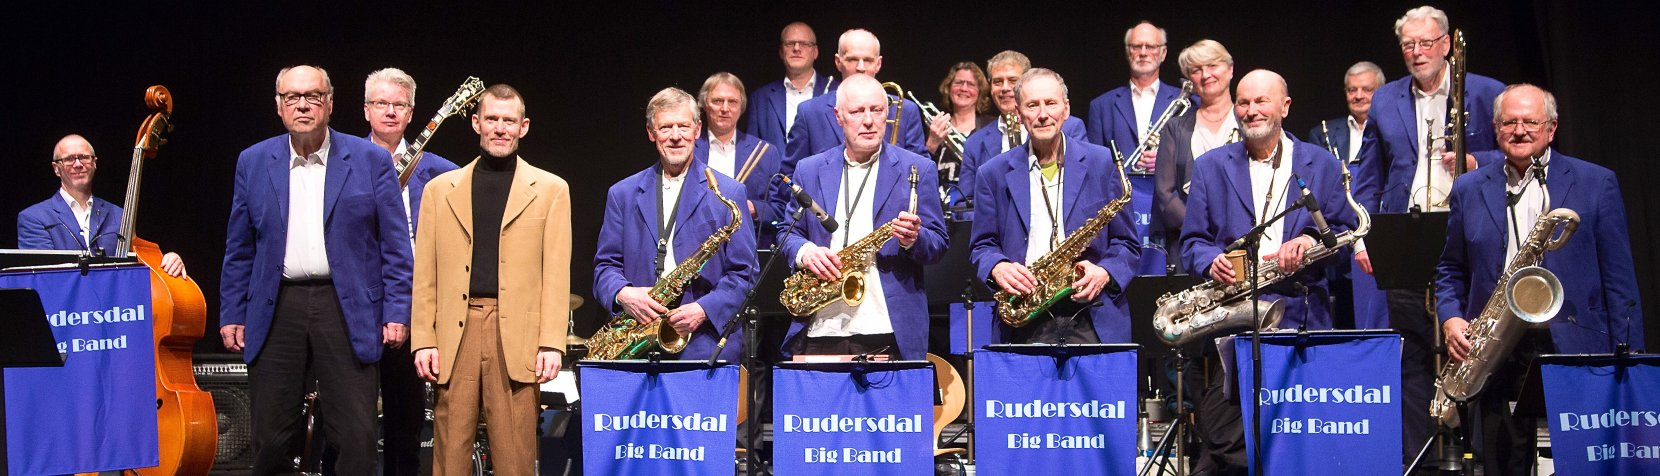 Rudersdal Big Band 2018